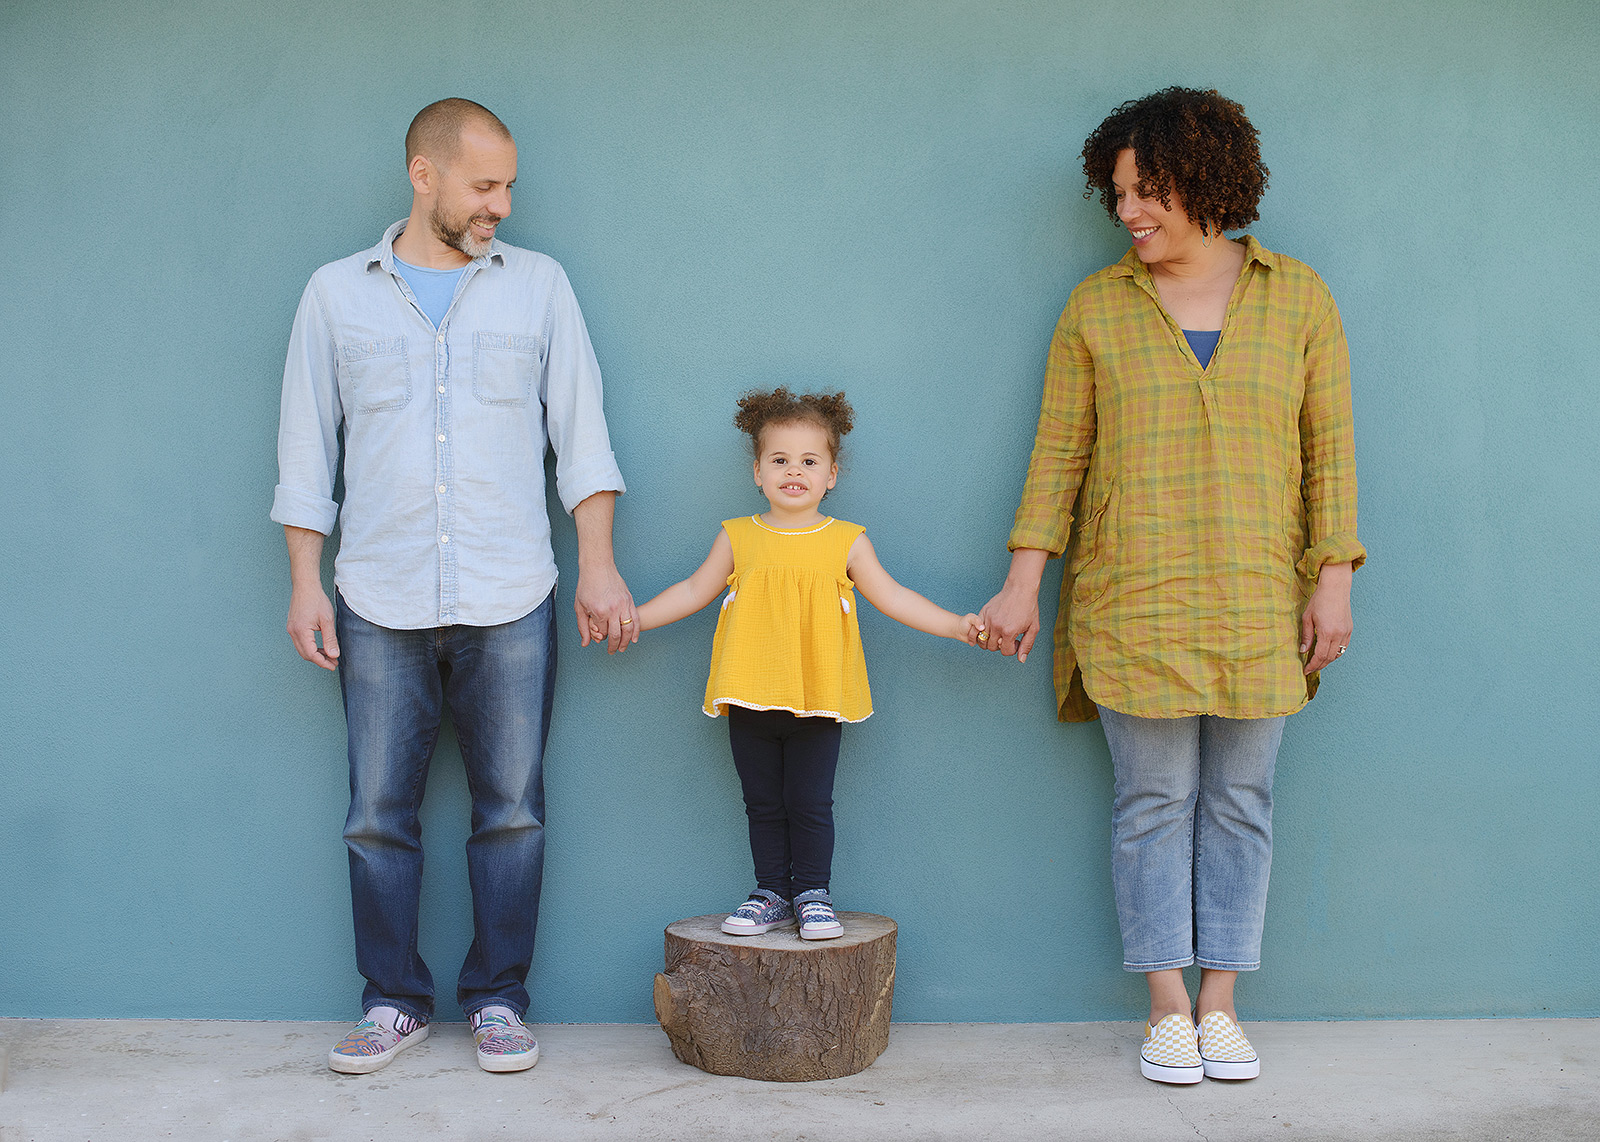 Mixed race family photo outside home with blue wall background in Sacramento